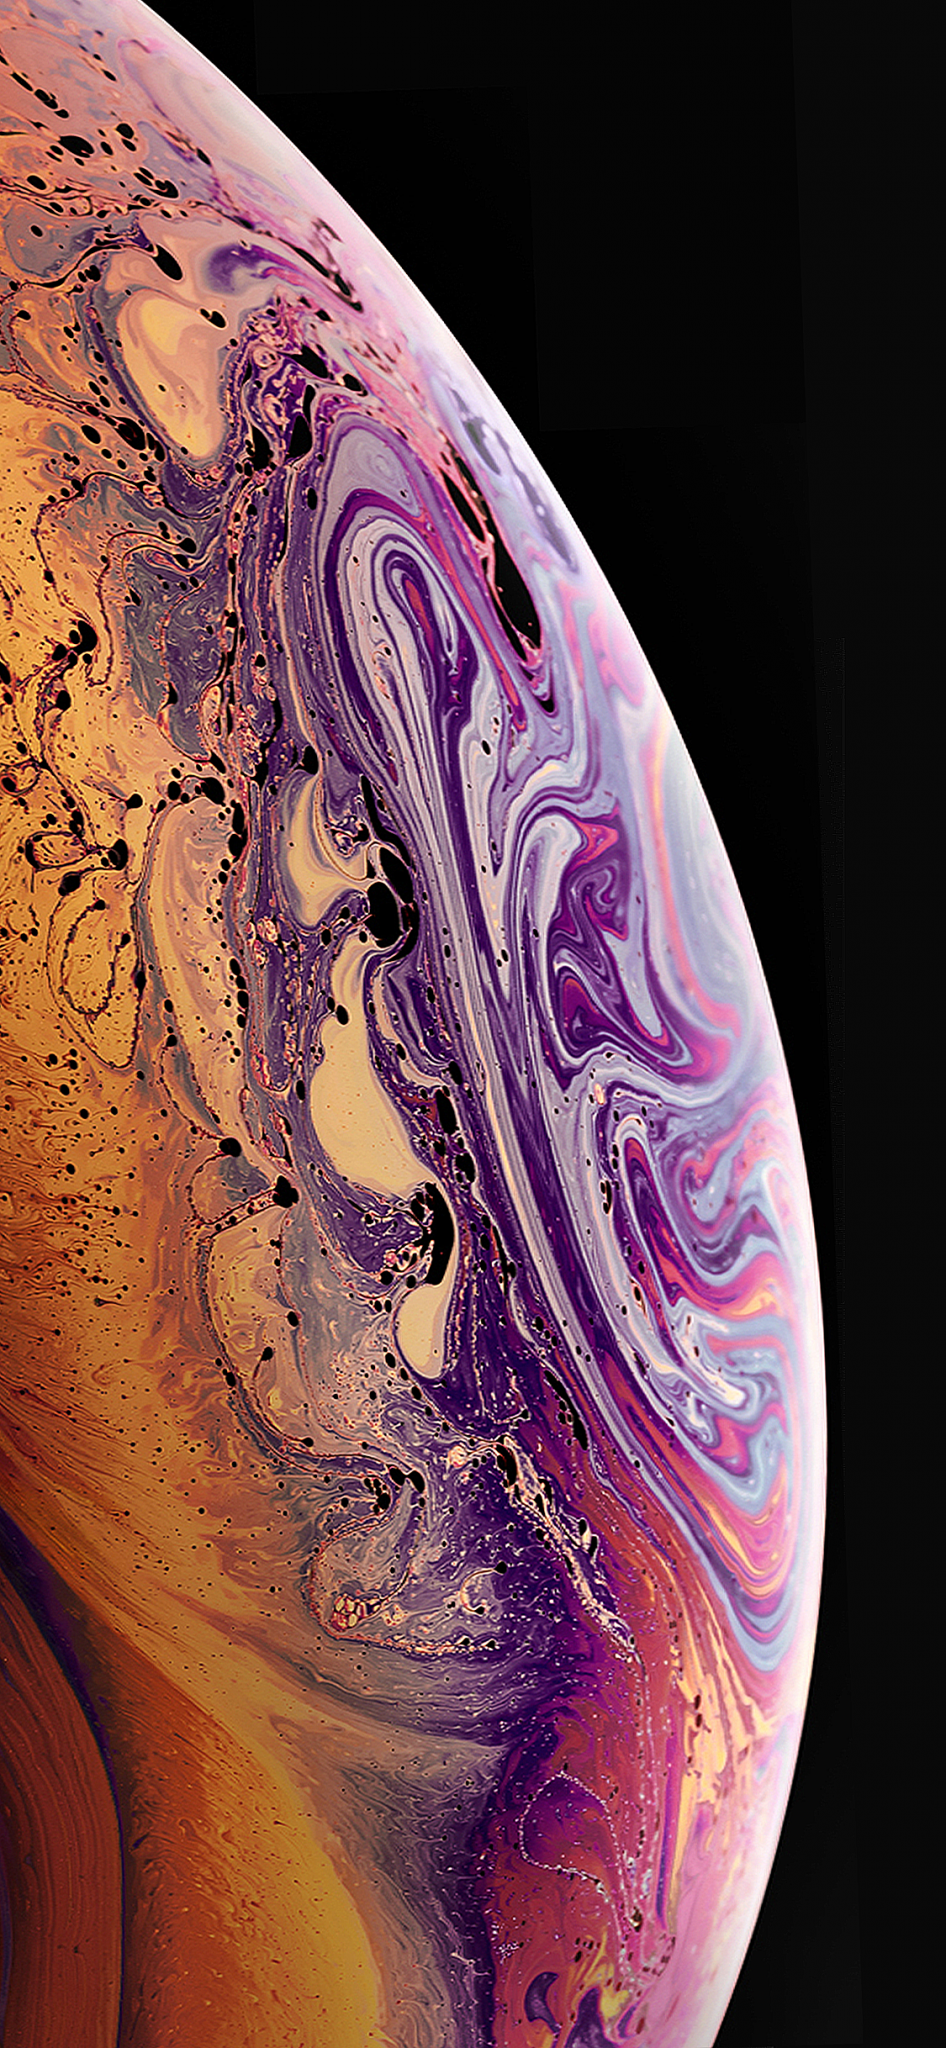 iPhone-XS-Wallpaper-TechFoogle-01